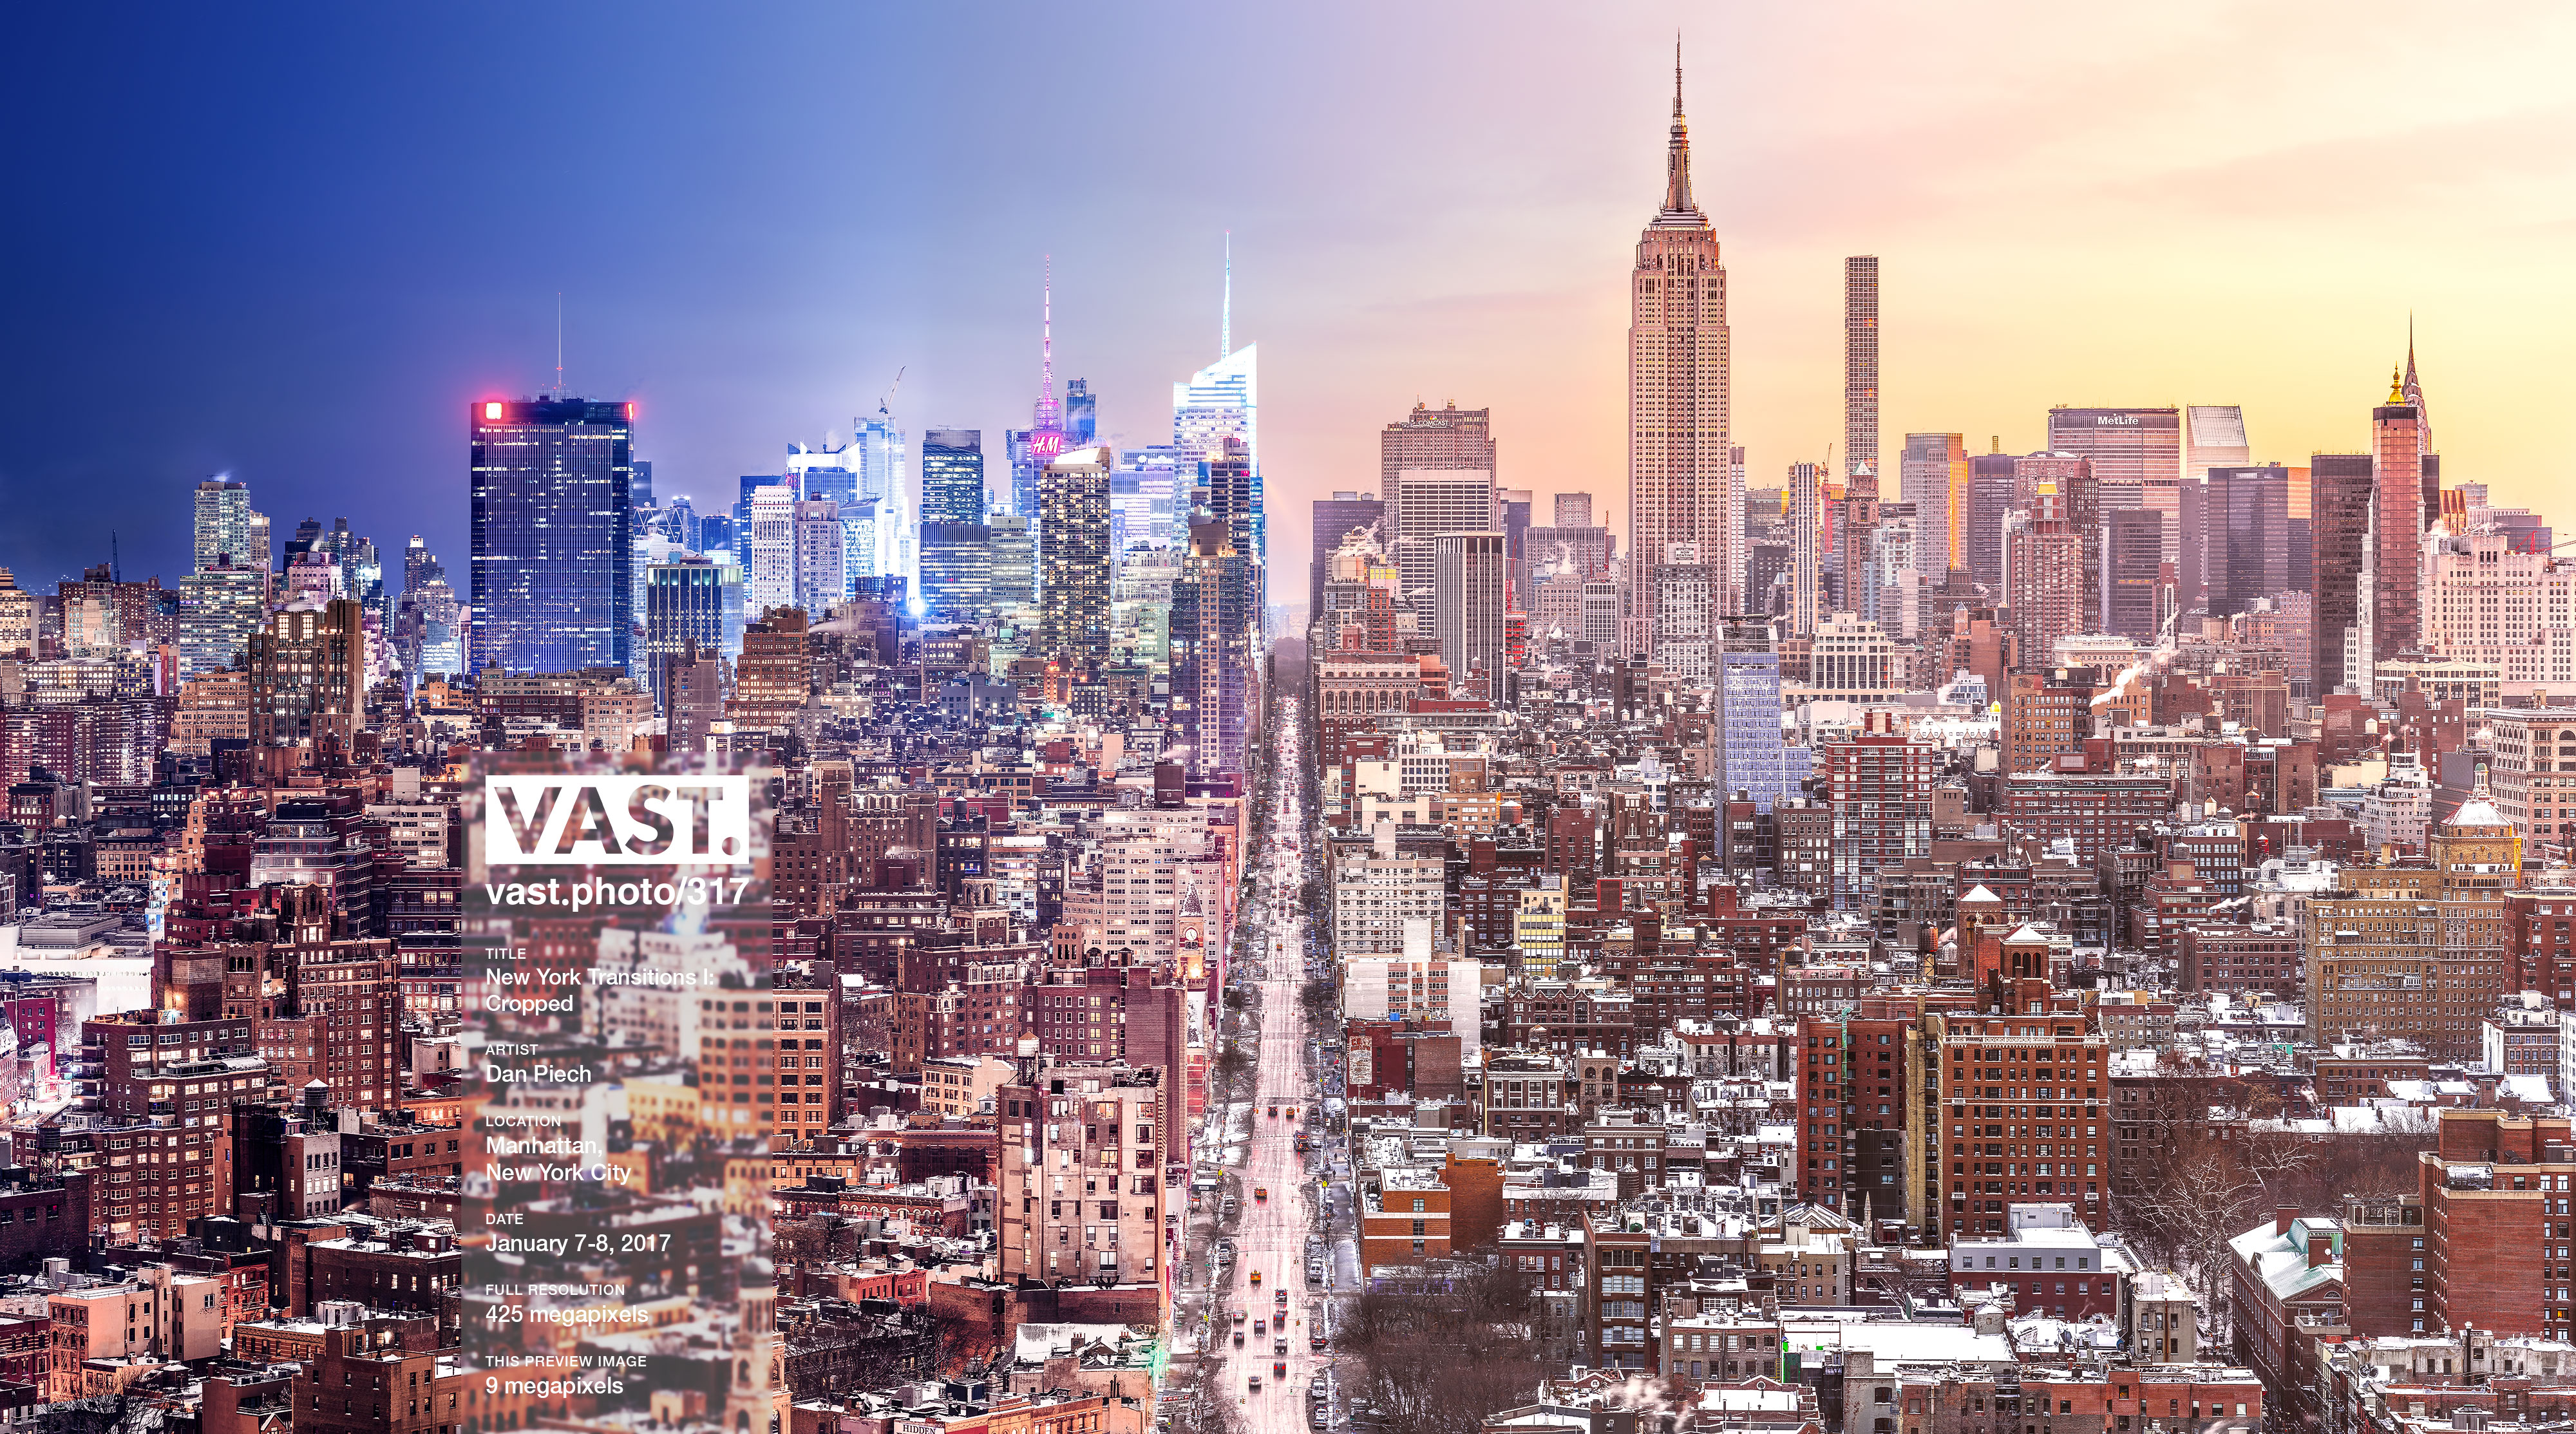 NYC Day and Night Skyline Photographs & Prints - VAST